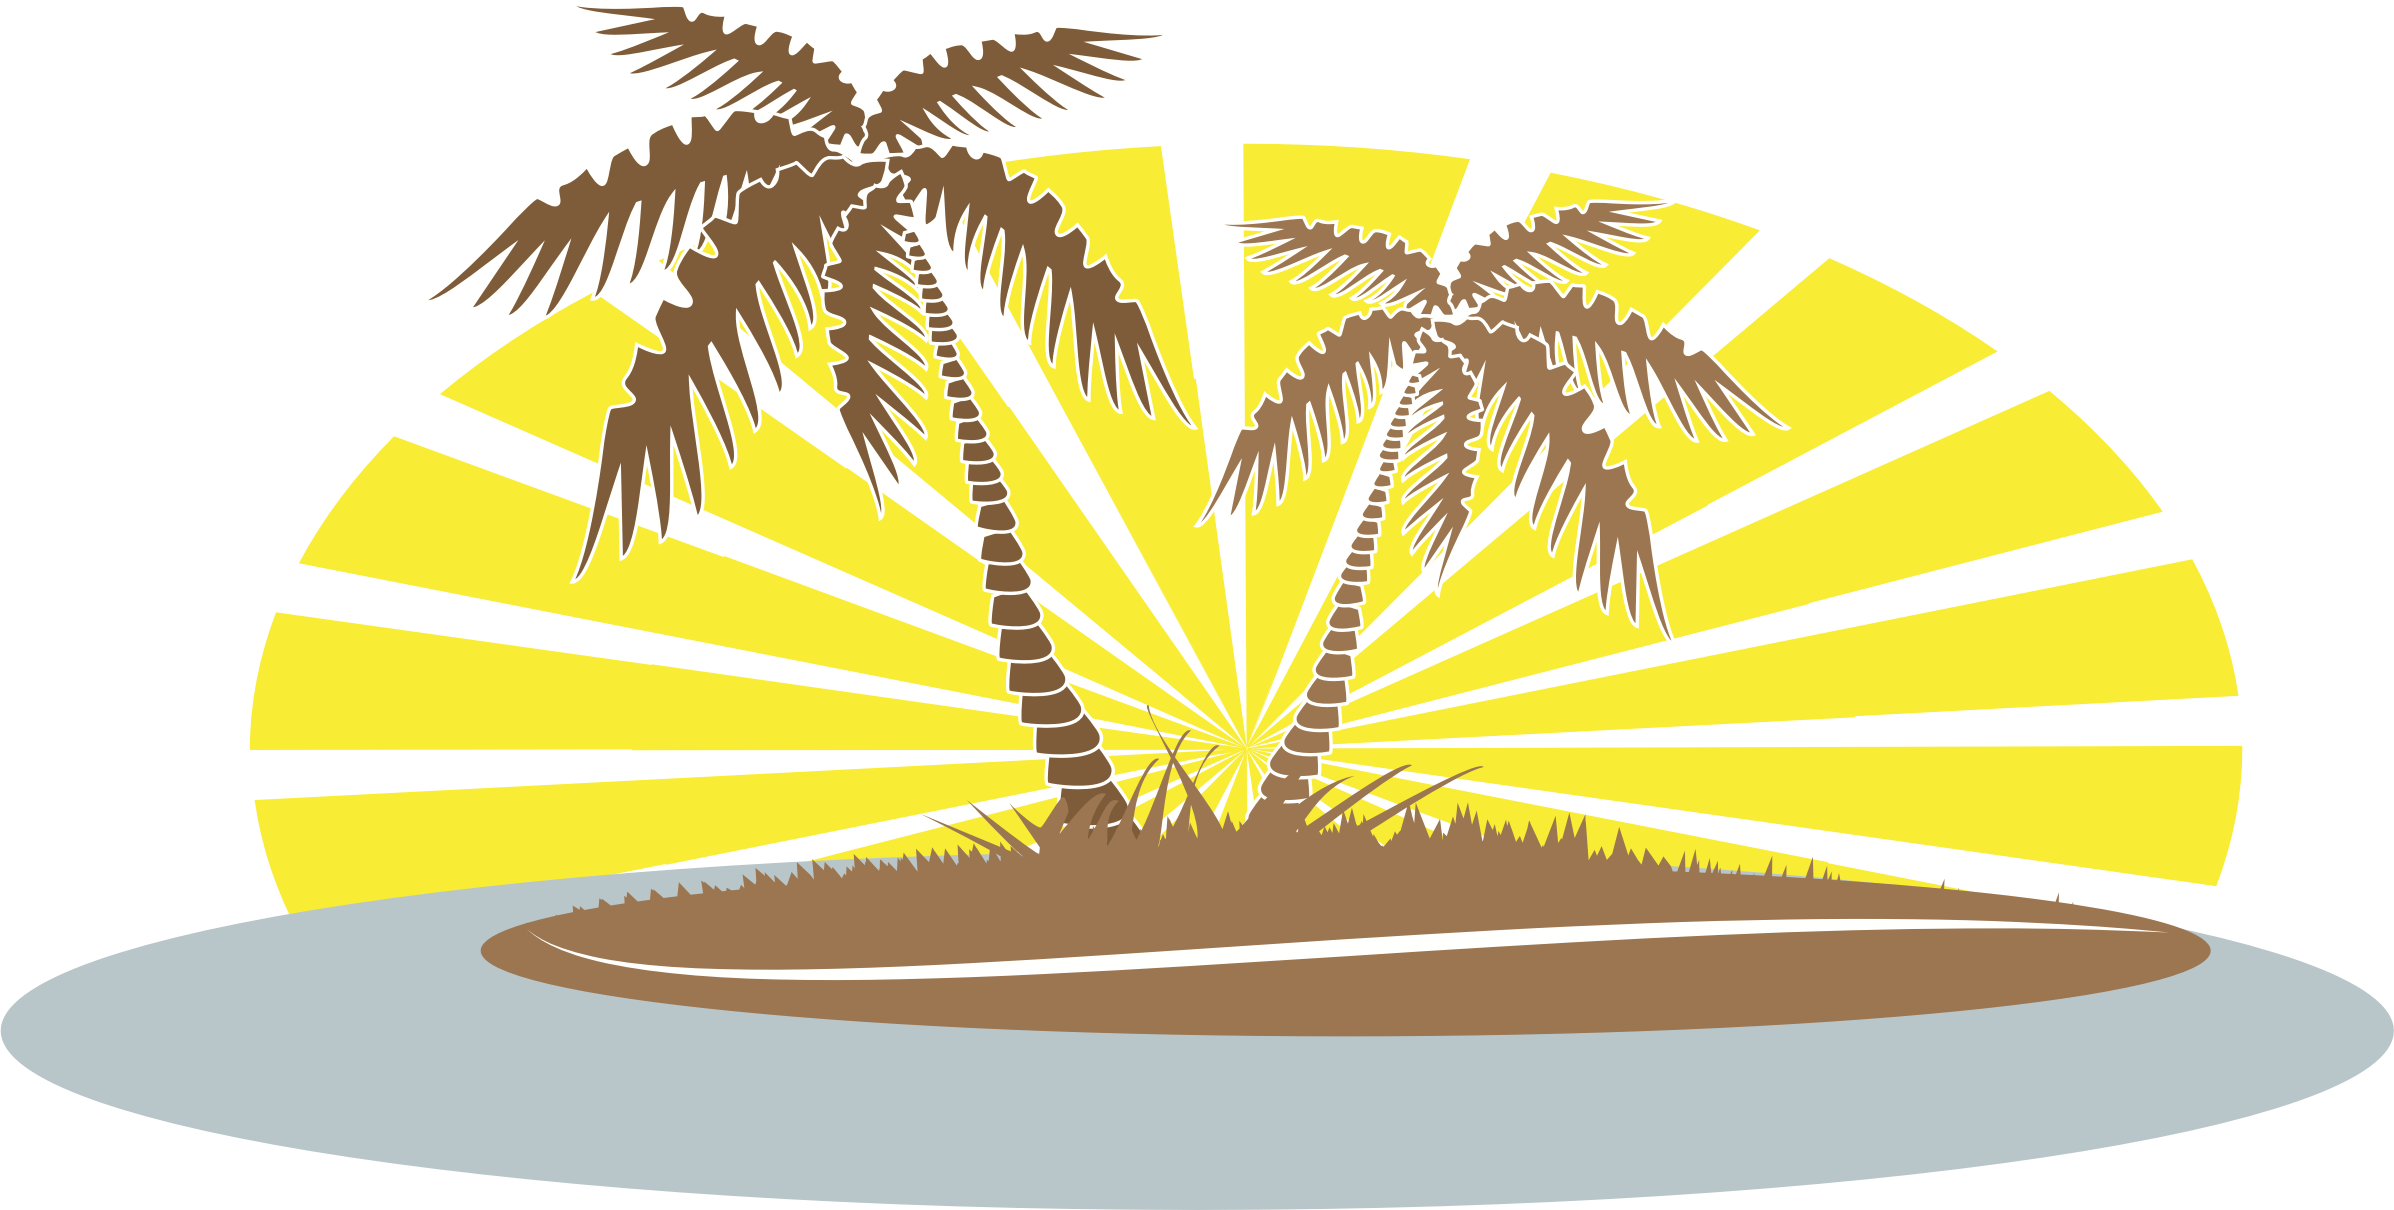 Palm tree and beach clipart graphic download Clipart - Palm Trees graphic download